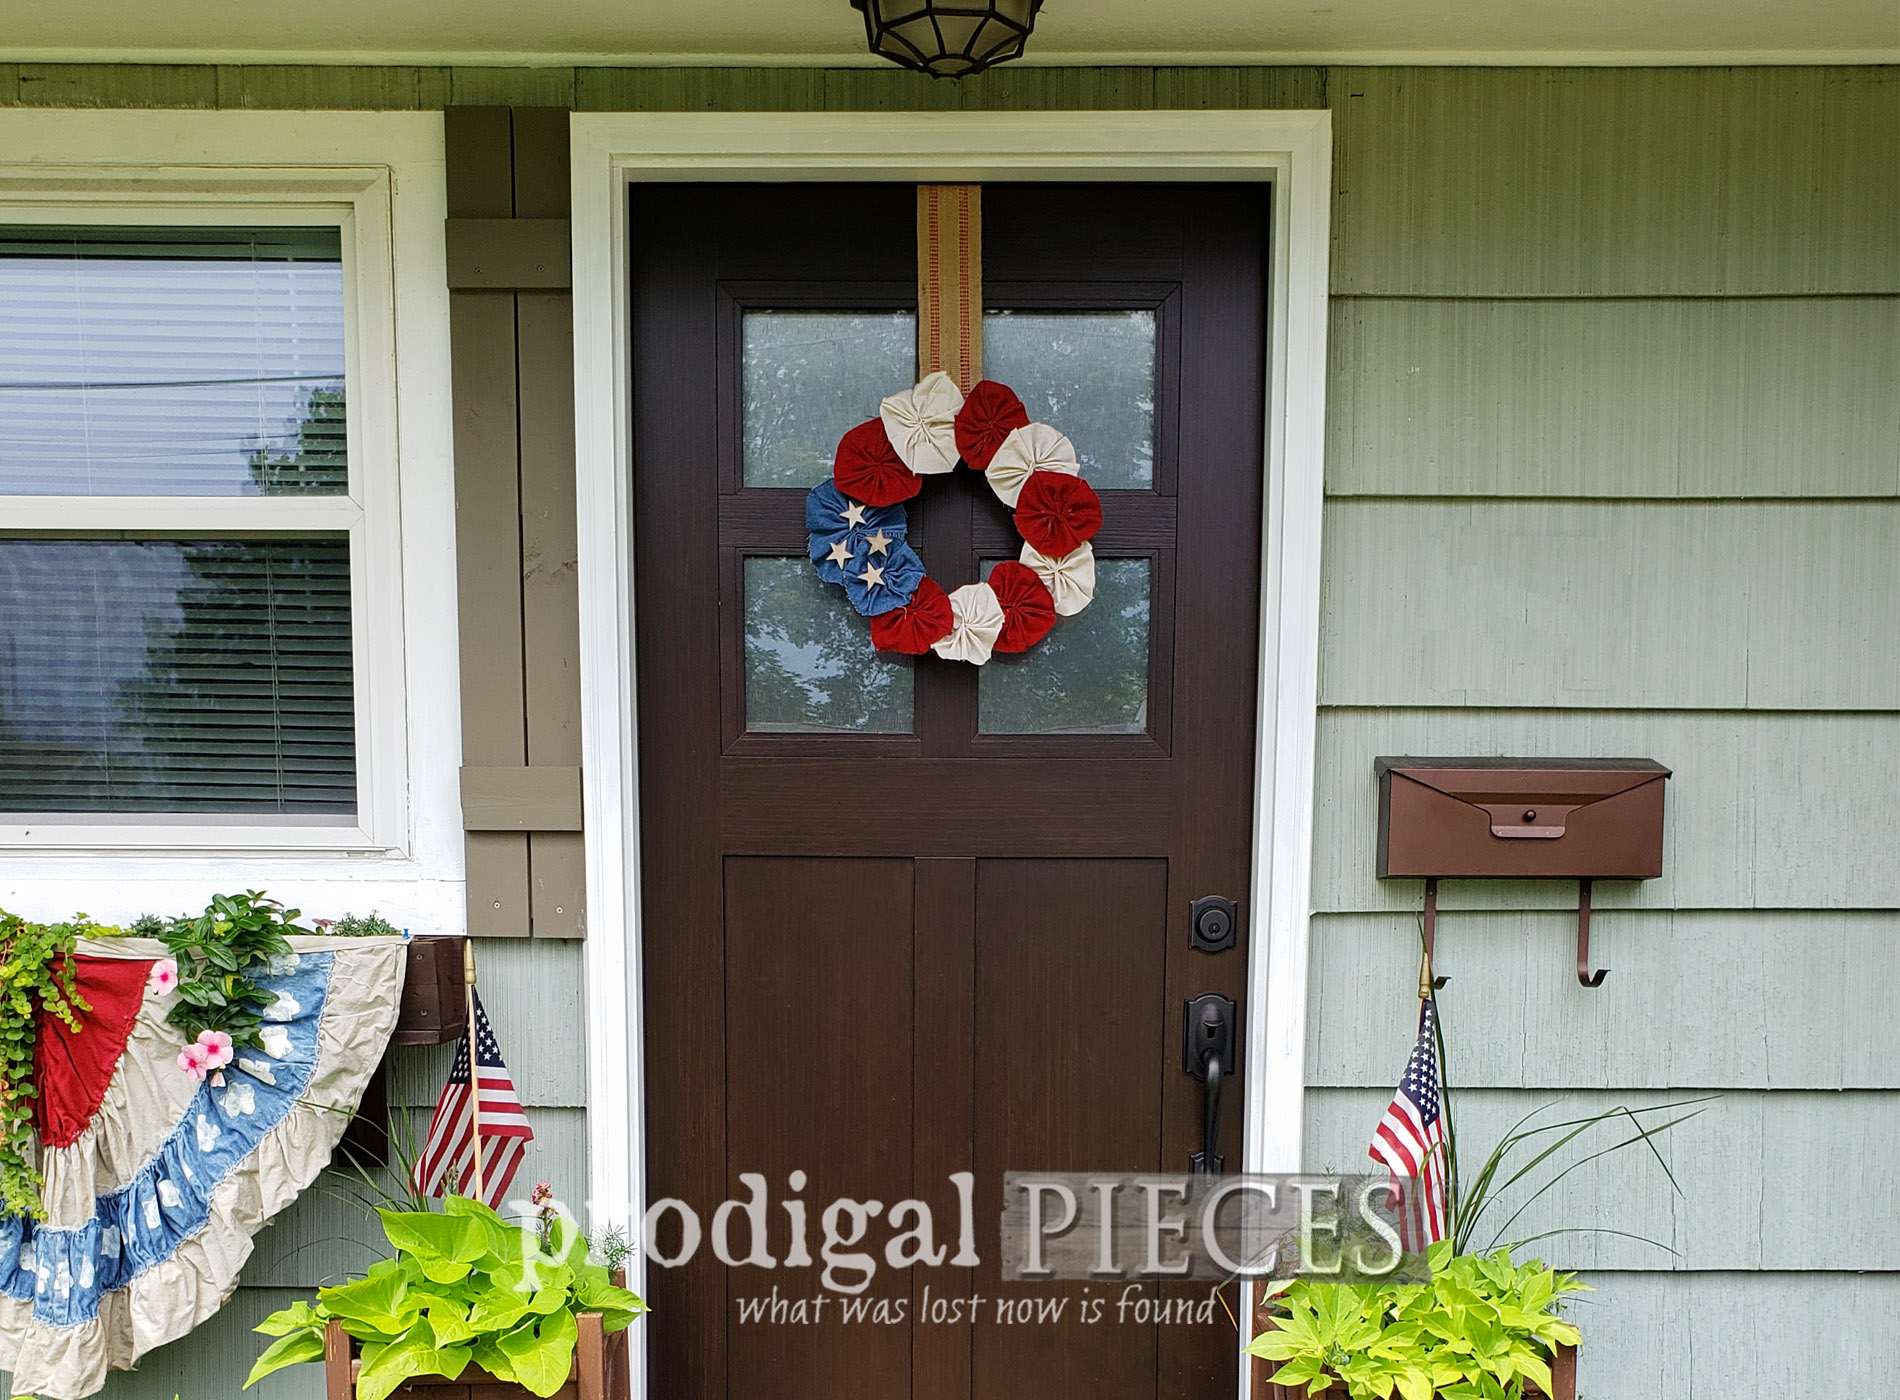 Featured 4th of July Wreath from Upcycled Fabric by Larissa of Prodigal Pieces | prodigalpieces.com #prodigalpieces #diy #4thofjuly #independenceday #refashion